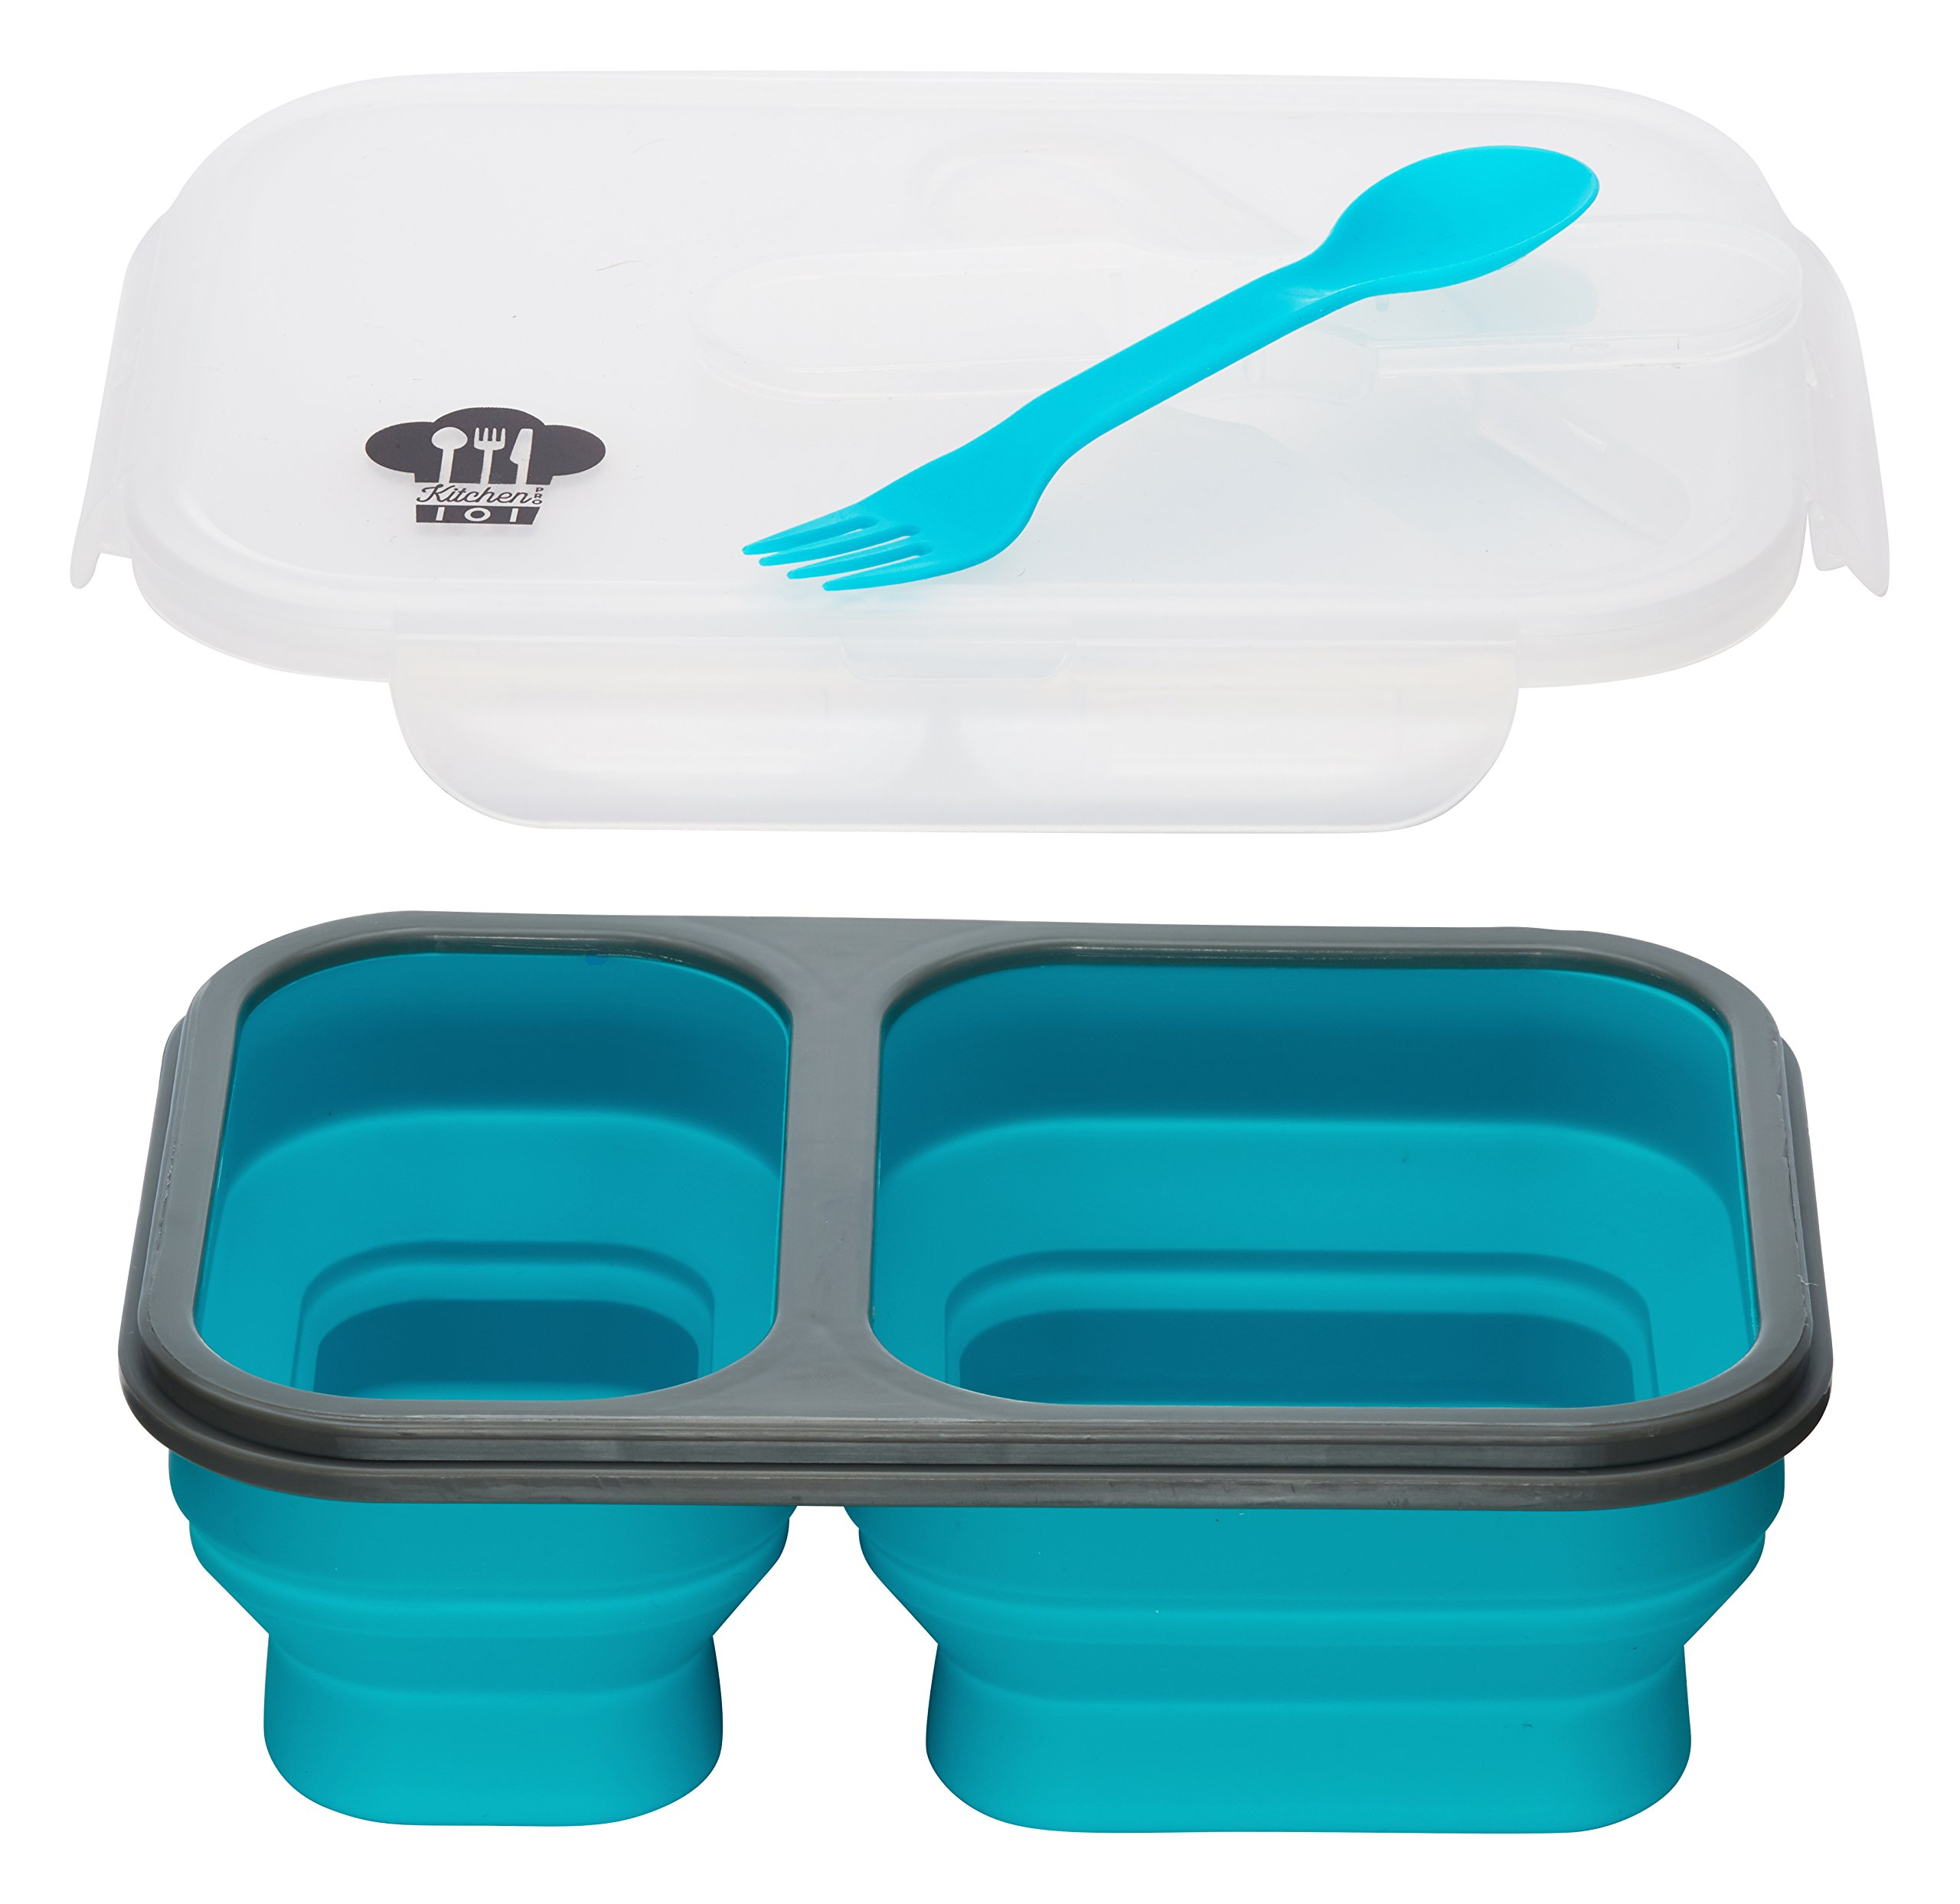 Kitchen Pro 101 Expandable & Collapsible Silicone School Lunch Box for Girls & Boys - 2 compartment Bento Box for Kids/Adults - As Seen On TV (Blue)